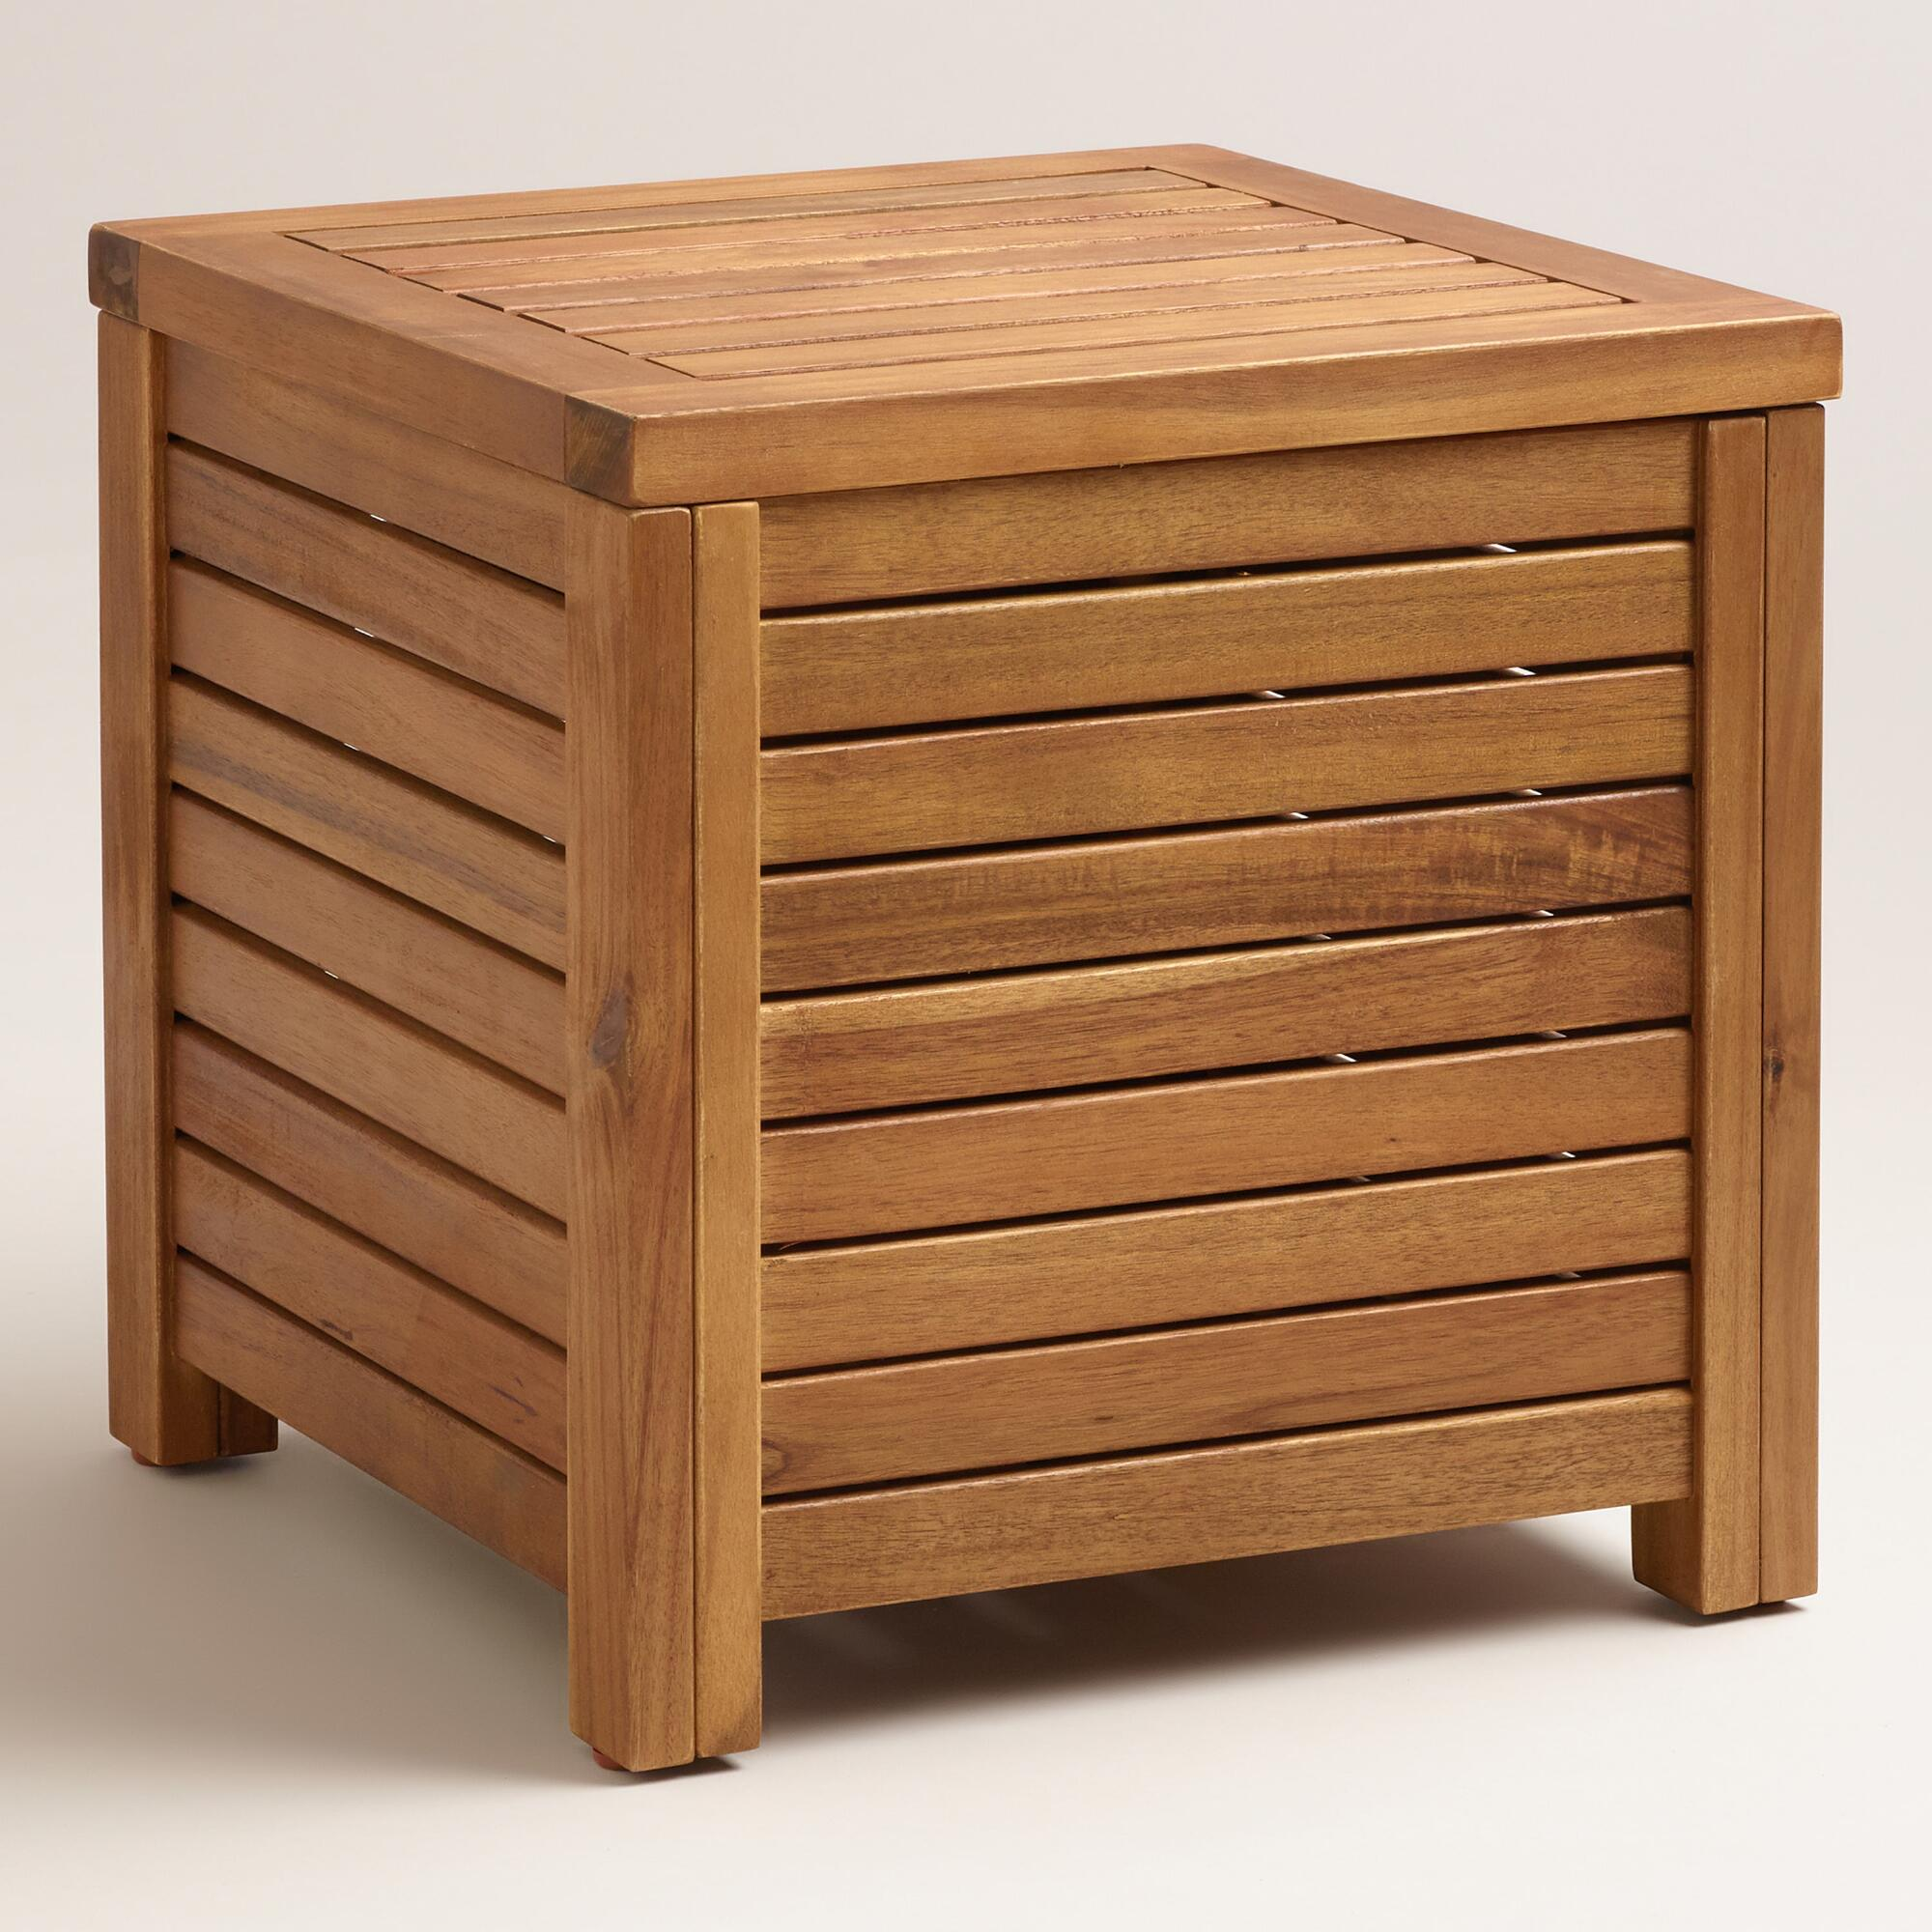 Wood Praiano Outdoor Storage Side Table | World Market